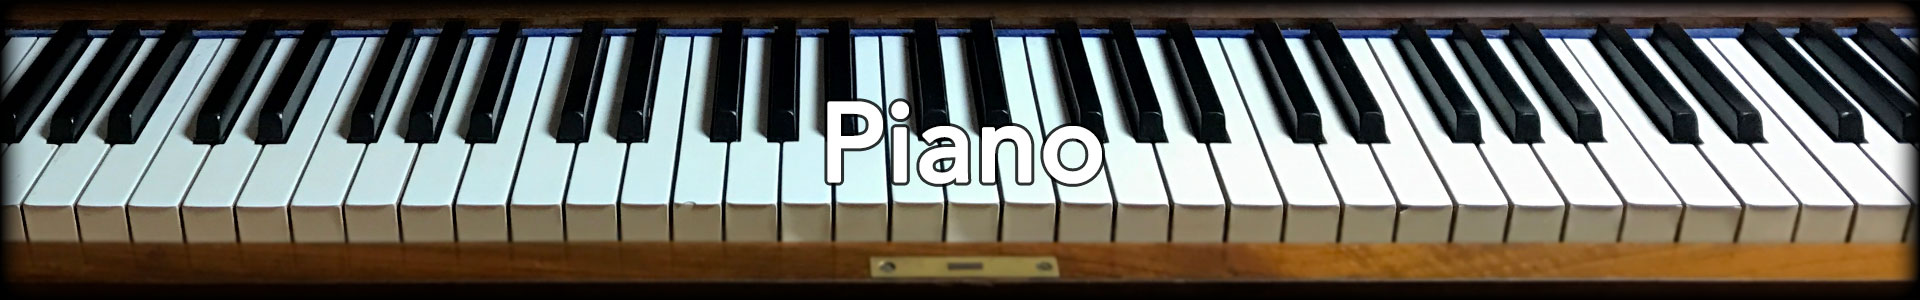 piano-btn-home-mobile